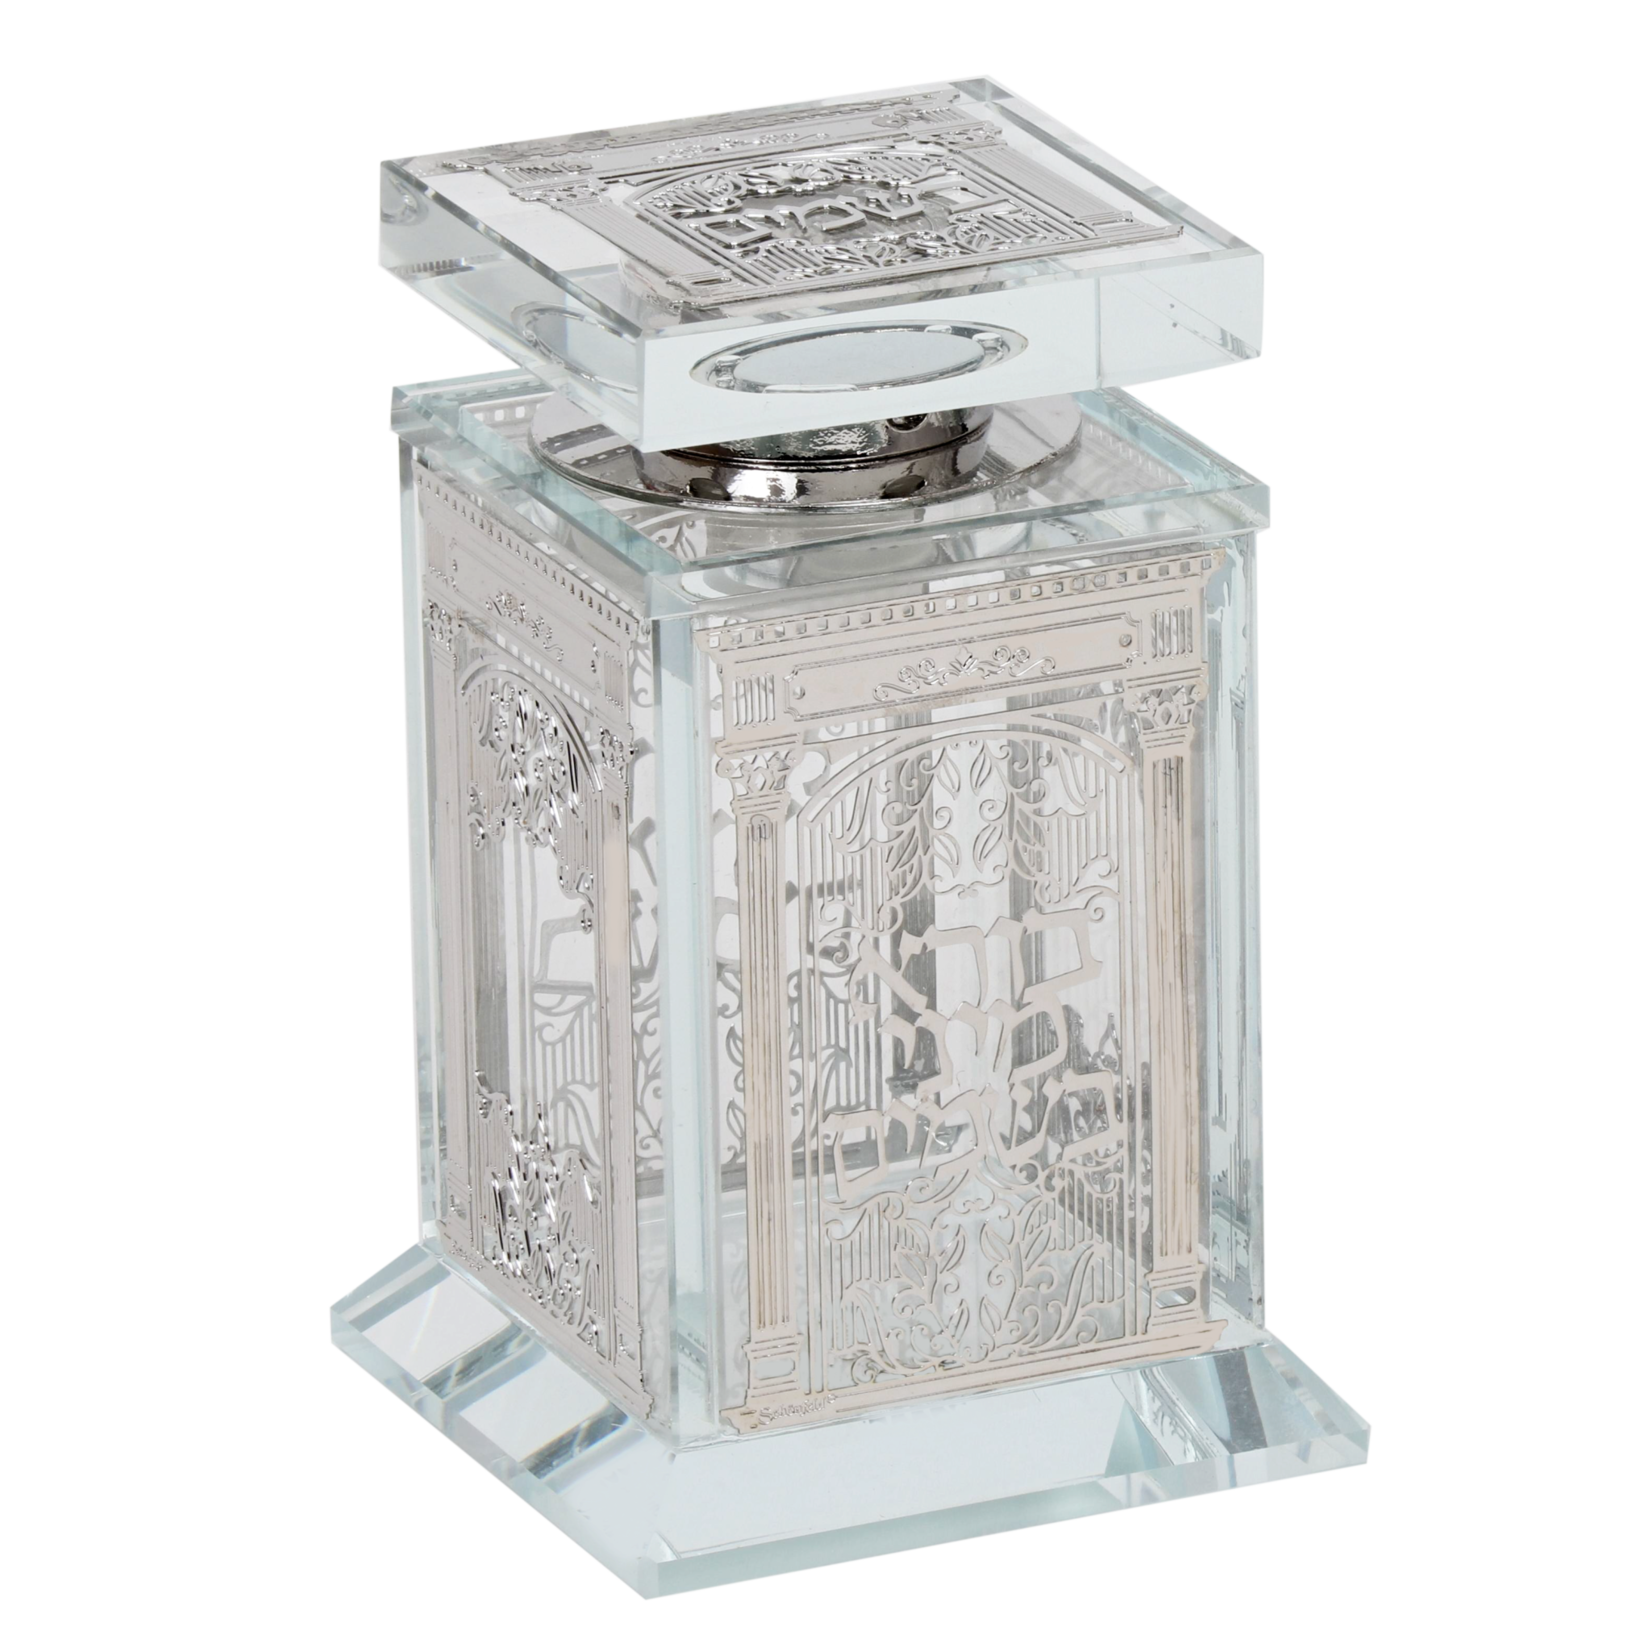 161016 Crystal Besomim Holder With Silver Plate